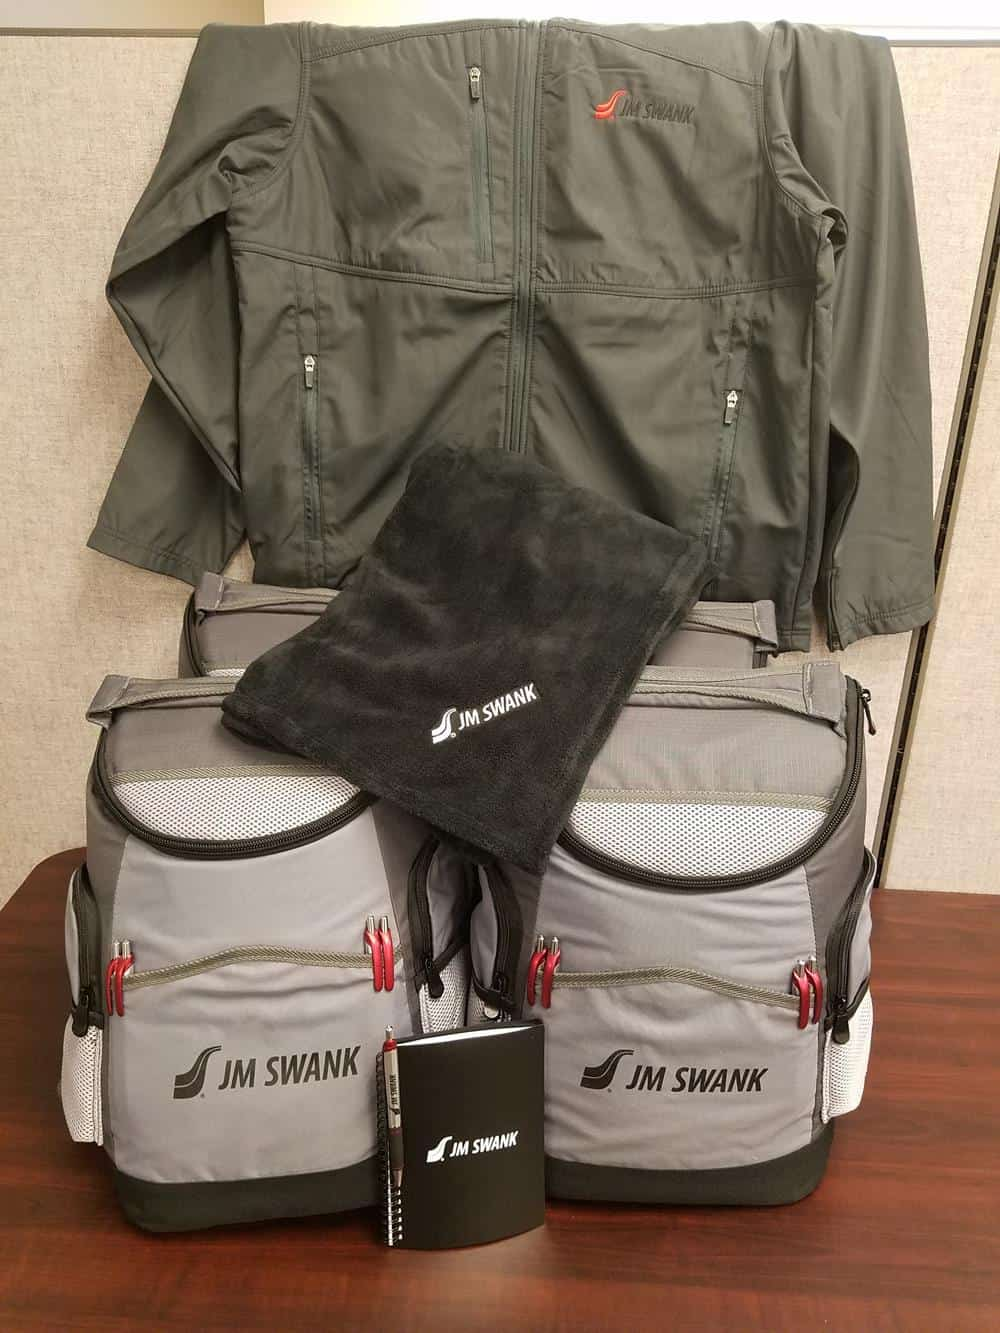 Gray backpack cooler, blanket, notebook with pen and jacket